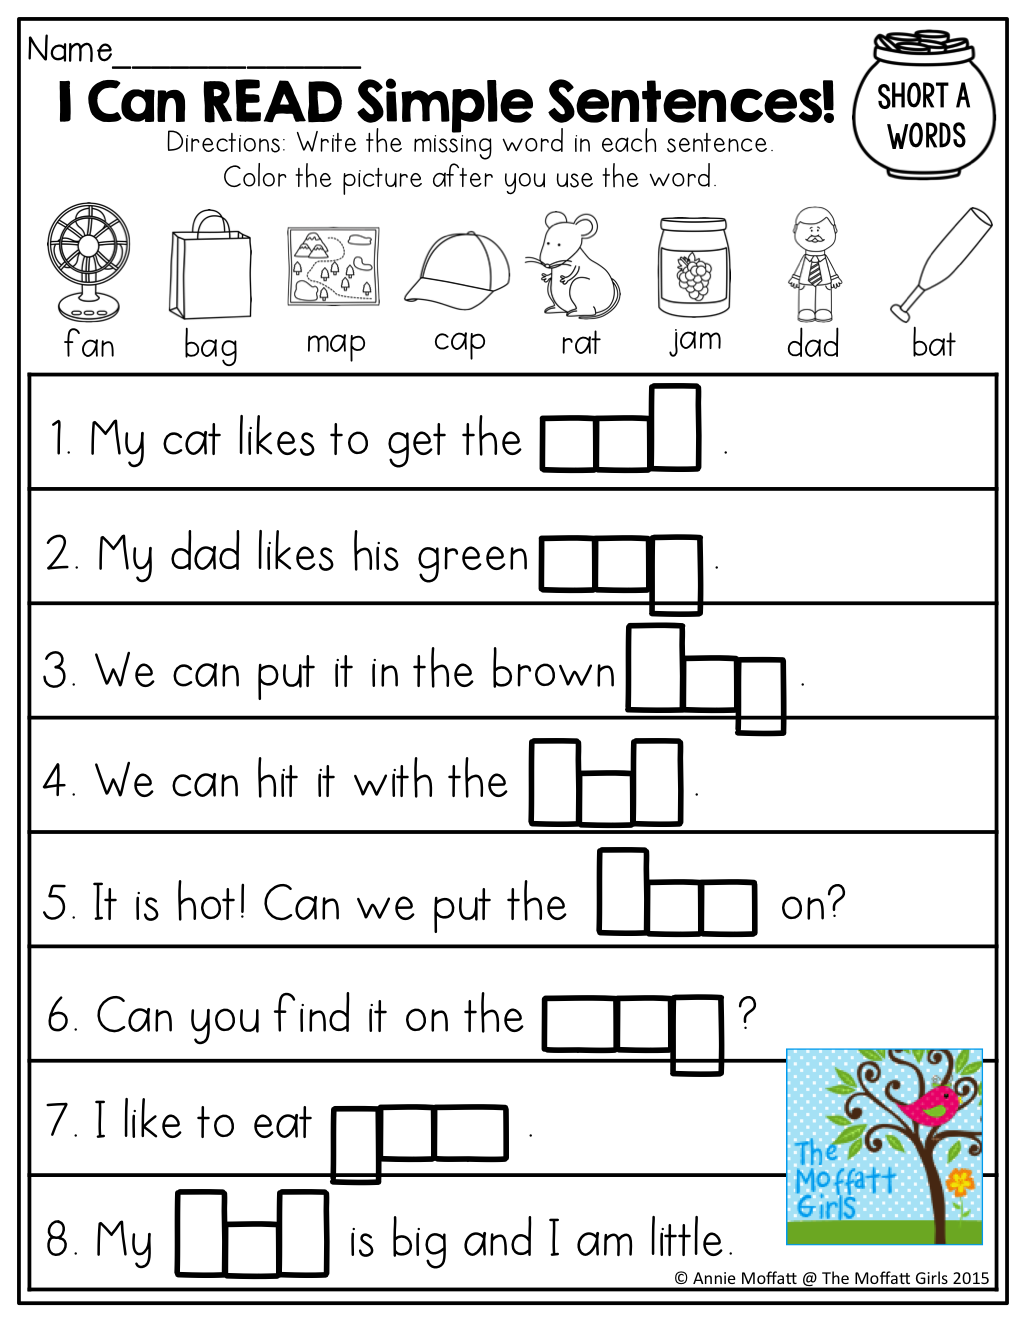 medium resolution of I Can READ! Simple Sentences with CVC words to fill in!   Word family  worksheets